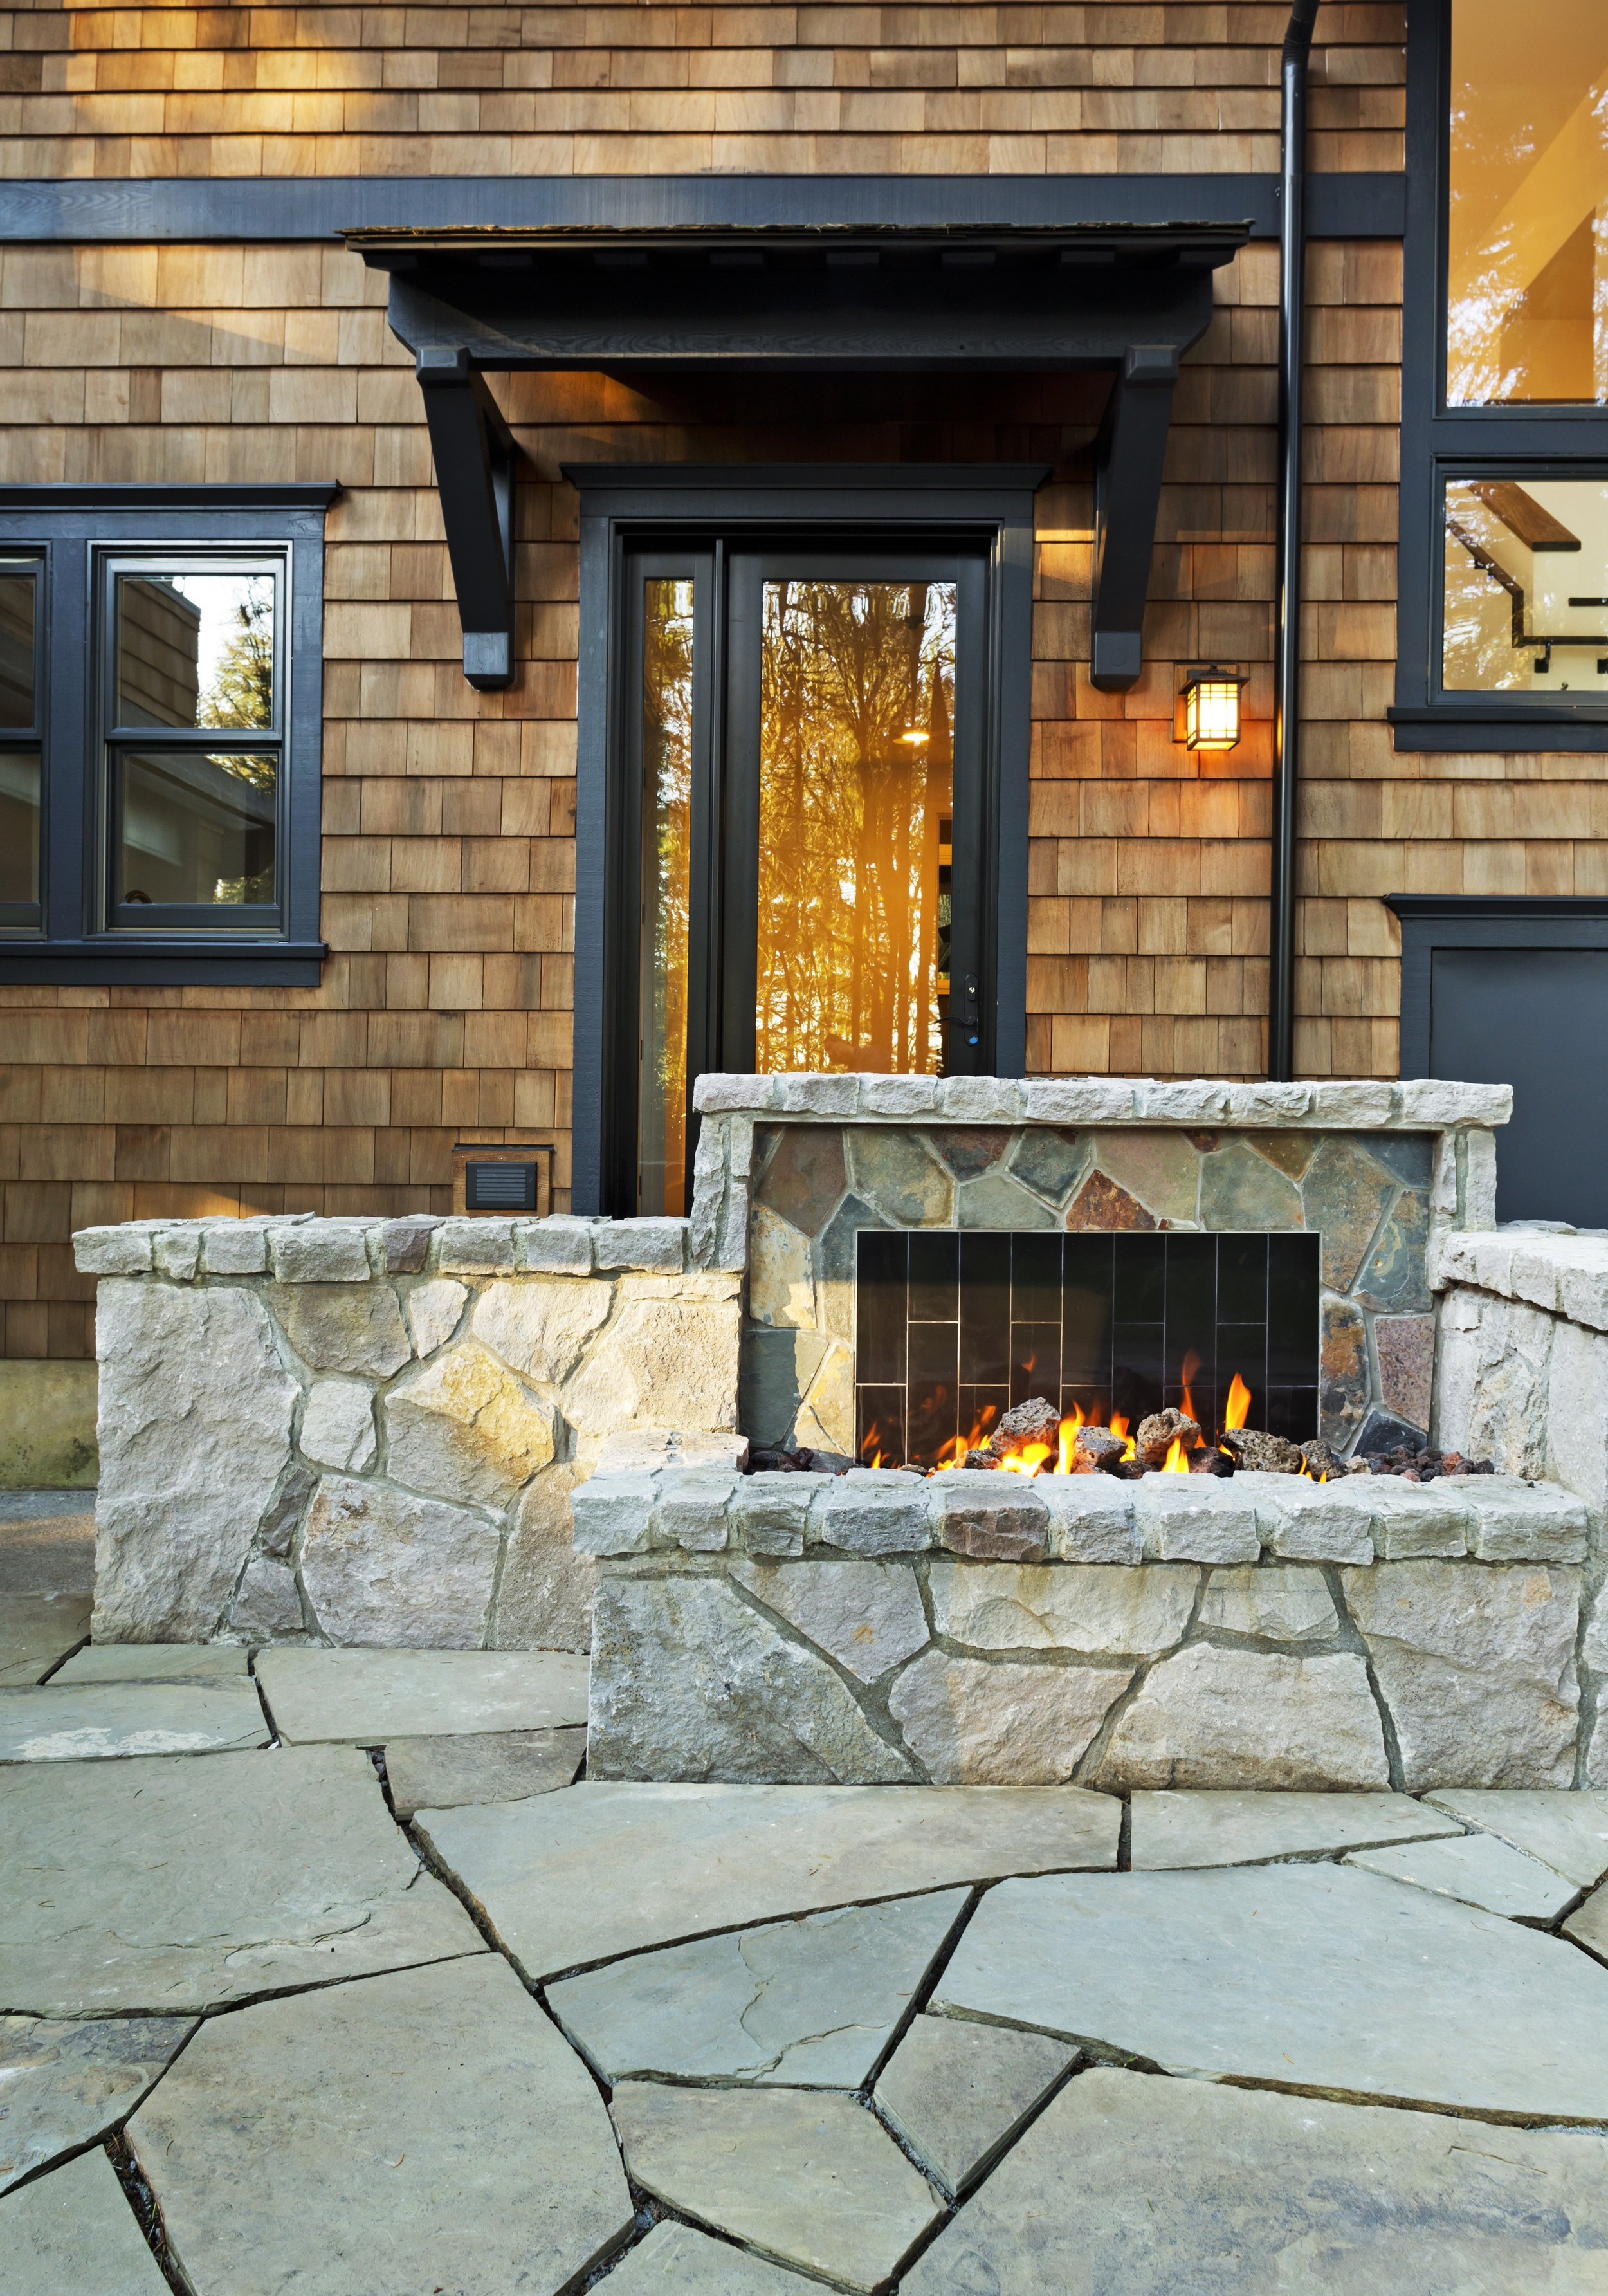 Fire Stones For Fireplace Masonry Supply Outdoor Fireplace And Fire Pit Natural Stone